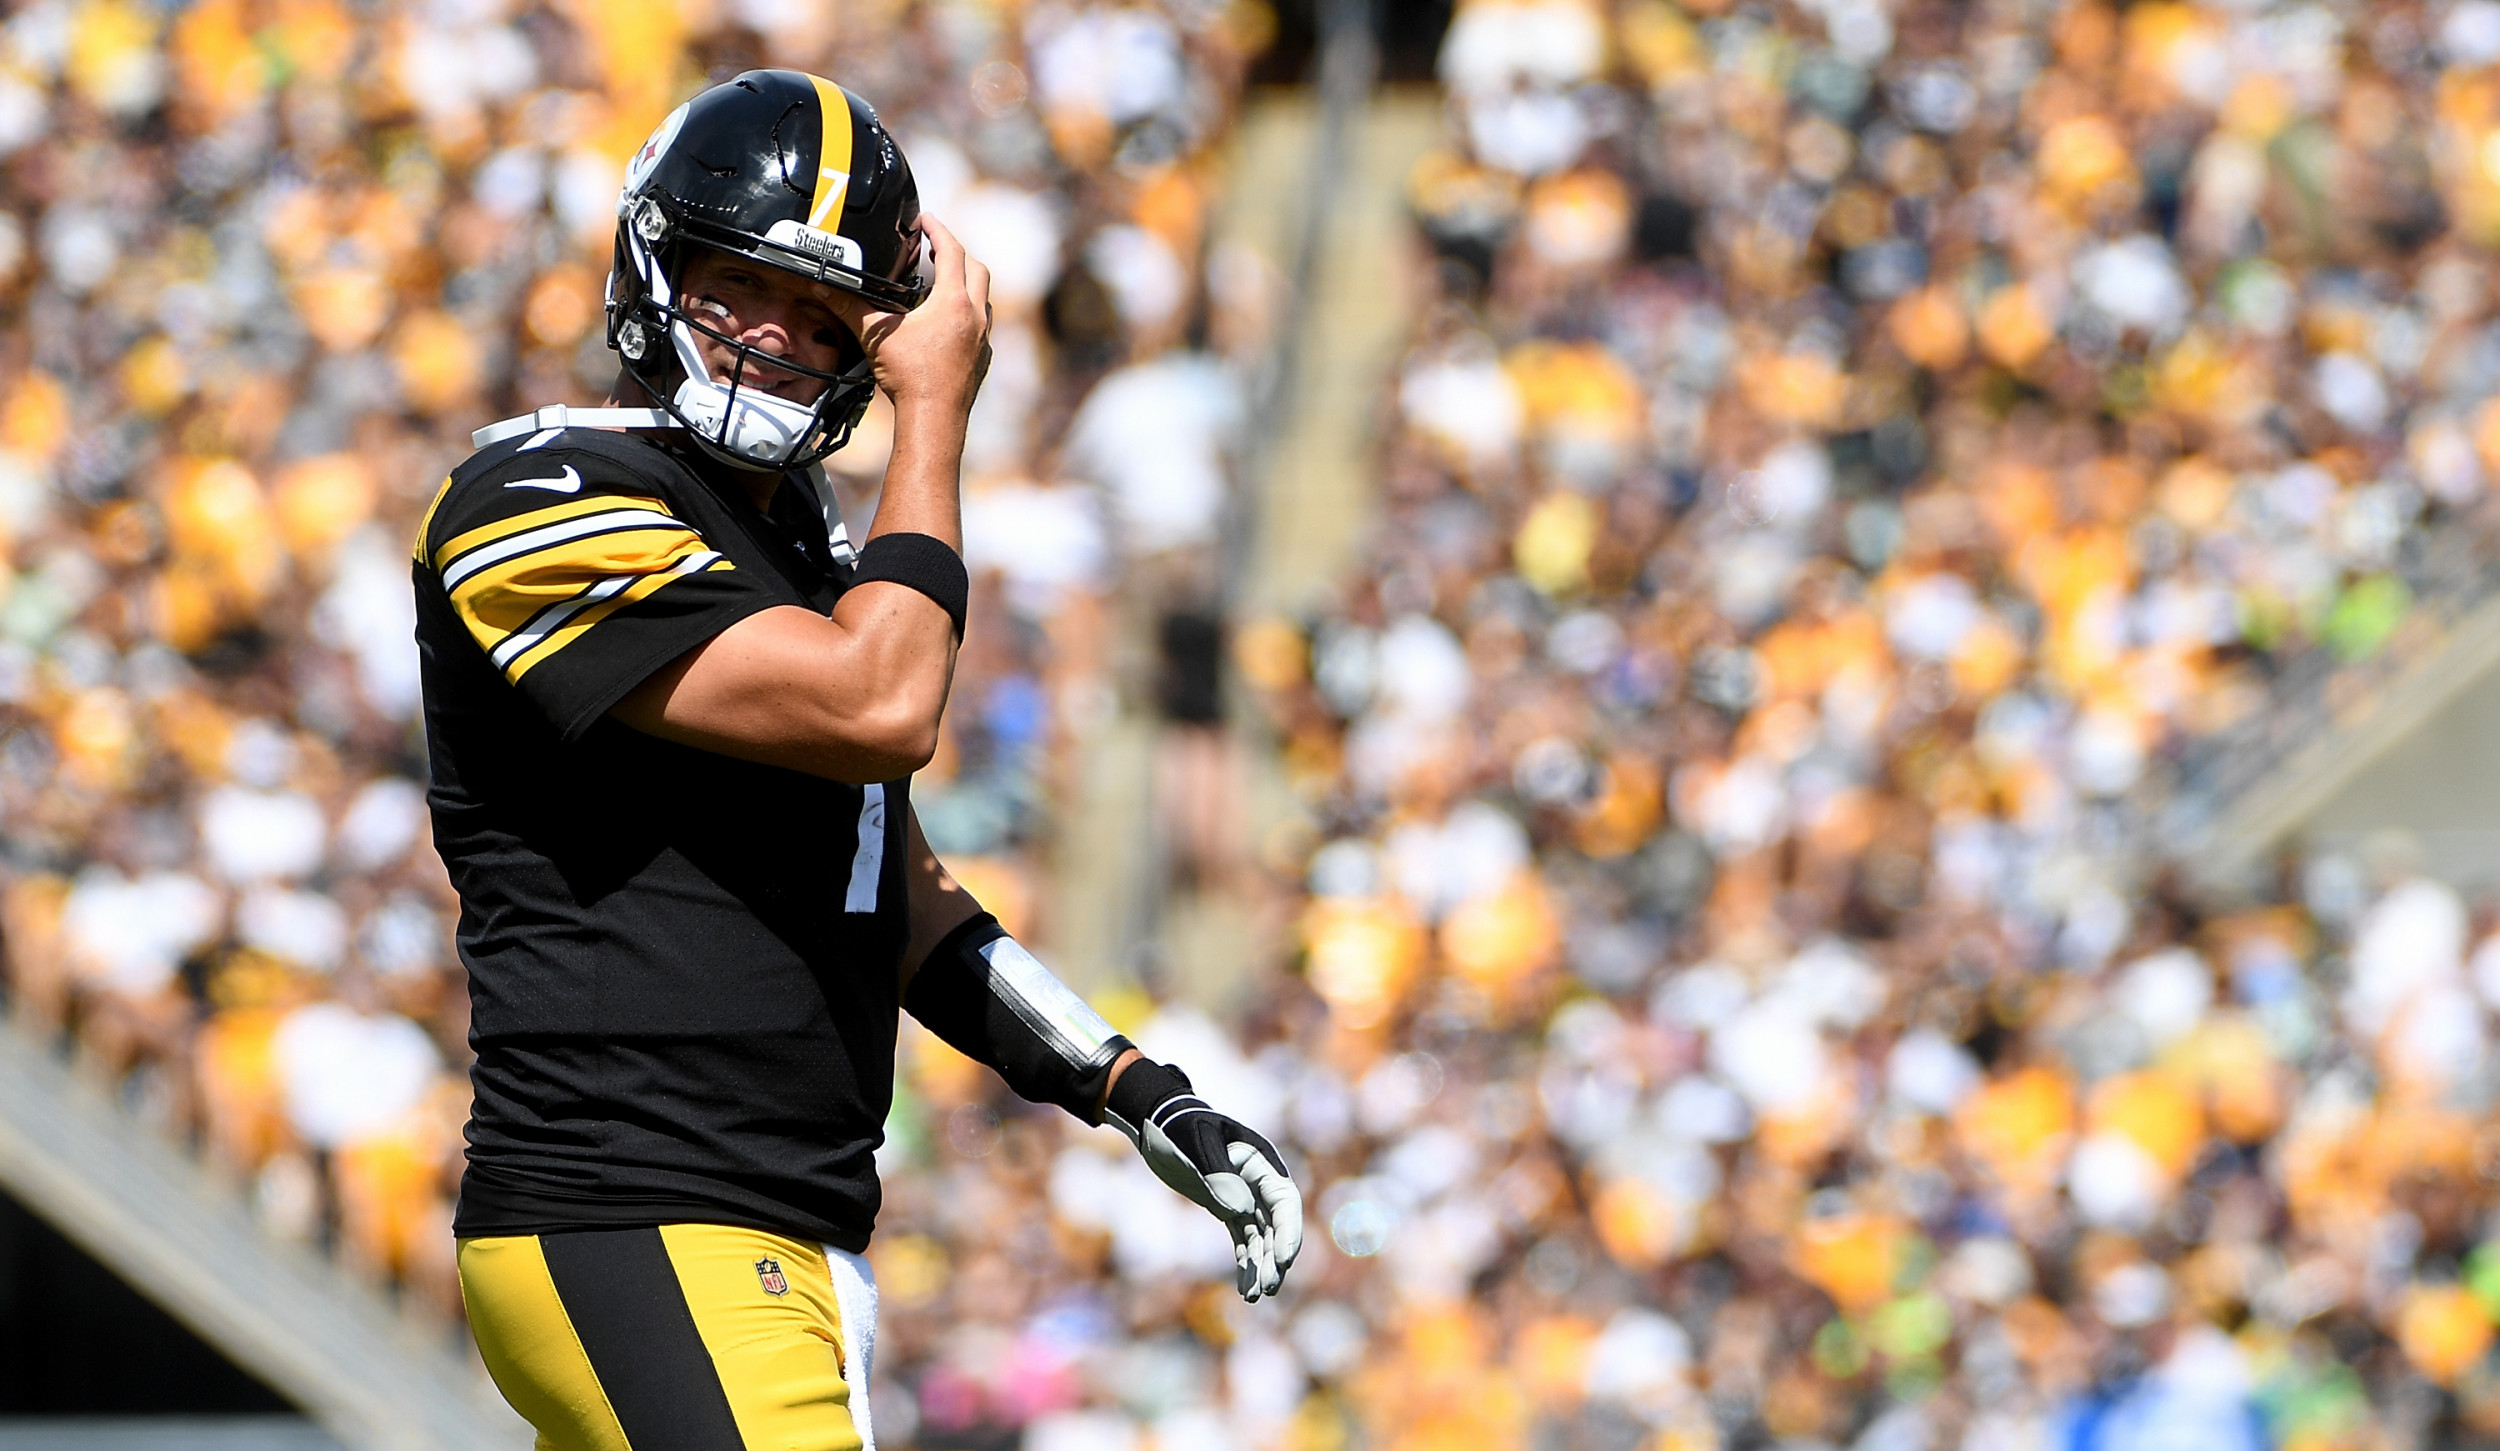 finest selection a1d7f 80f1a Ben Roethlisberger Injury News: Will Pittsburgh Steelers ...